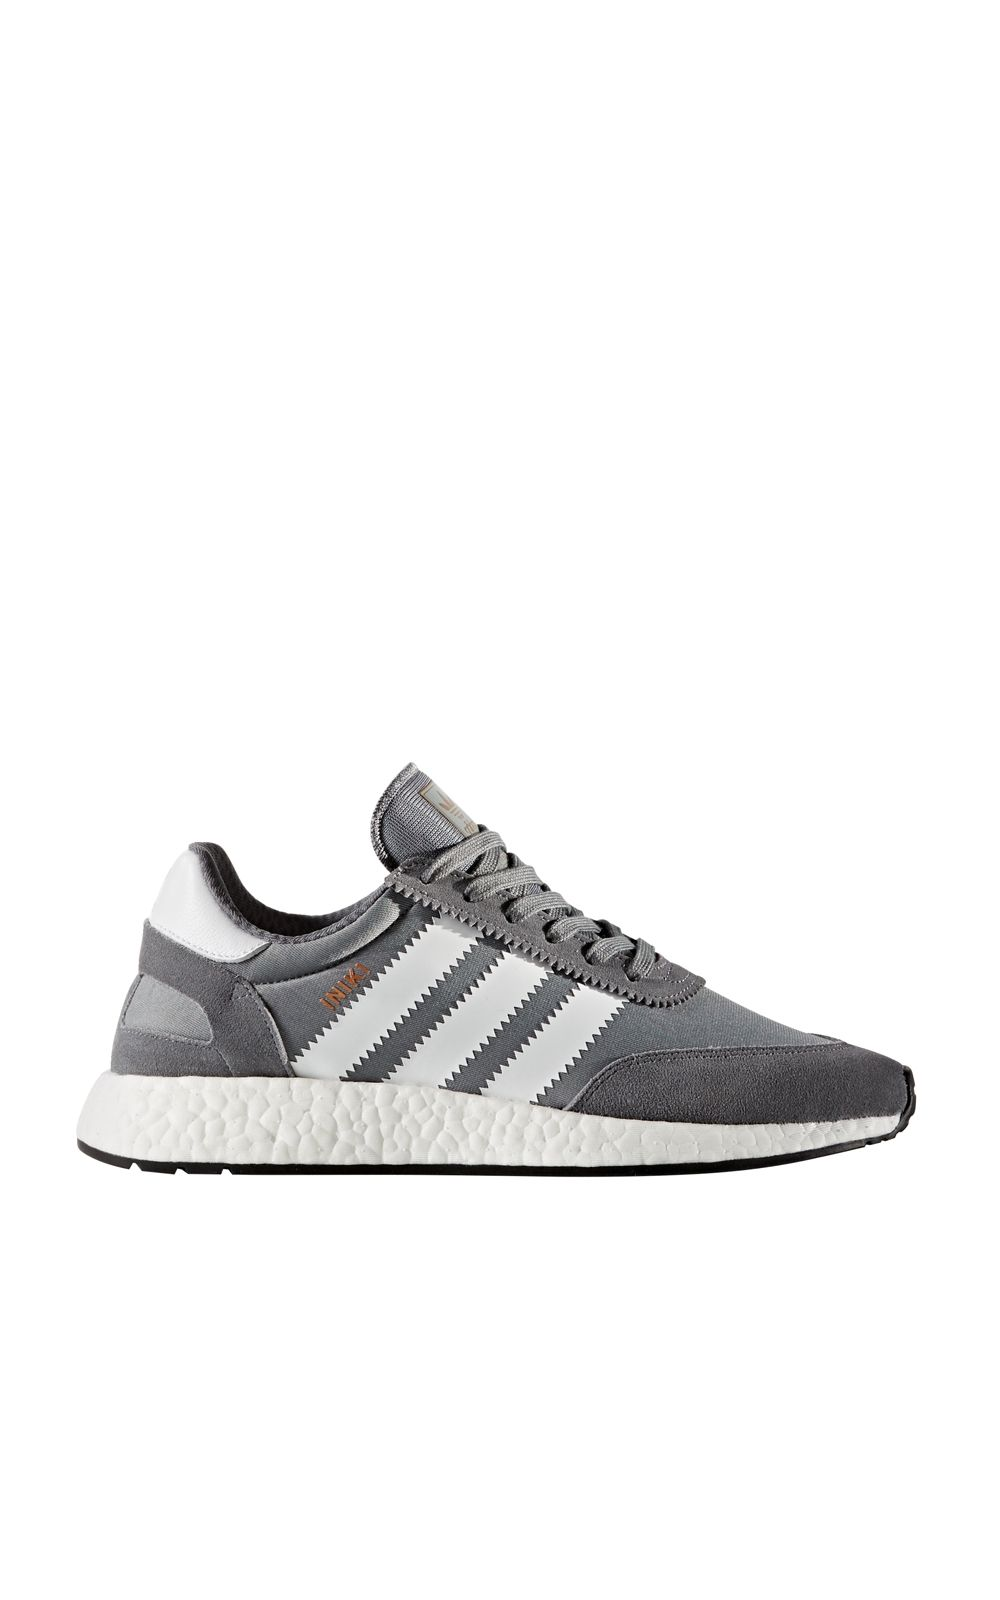 Adidas Grey Originali Iniki Runner Vista Grey Adidas Sneakerhead Pinterest c34602